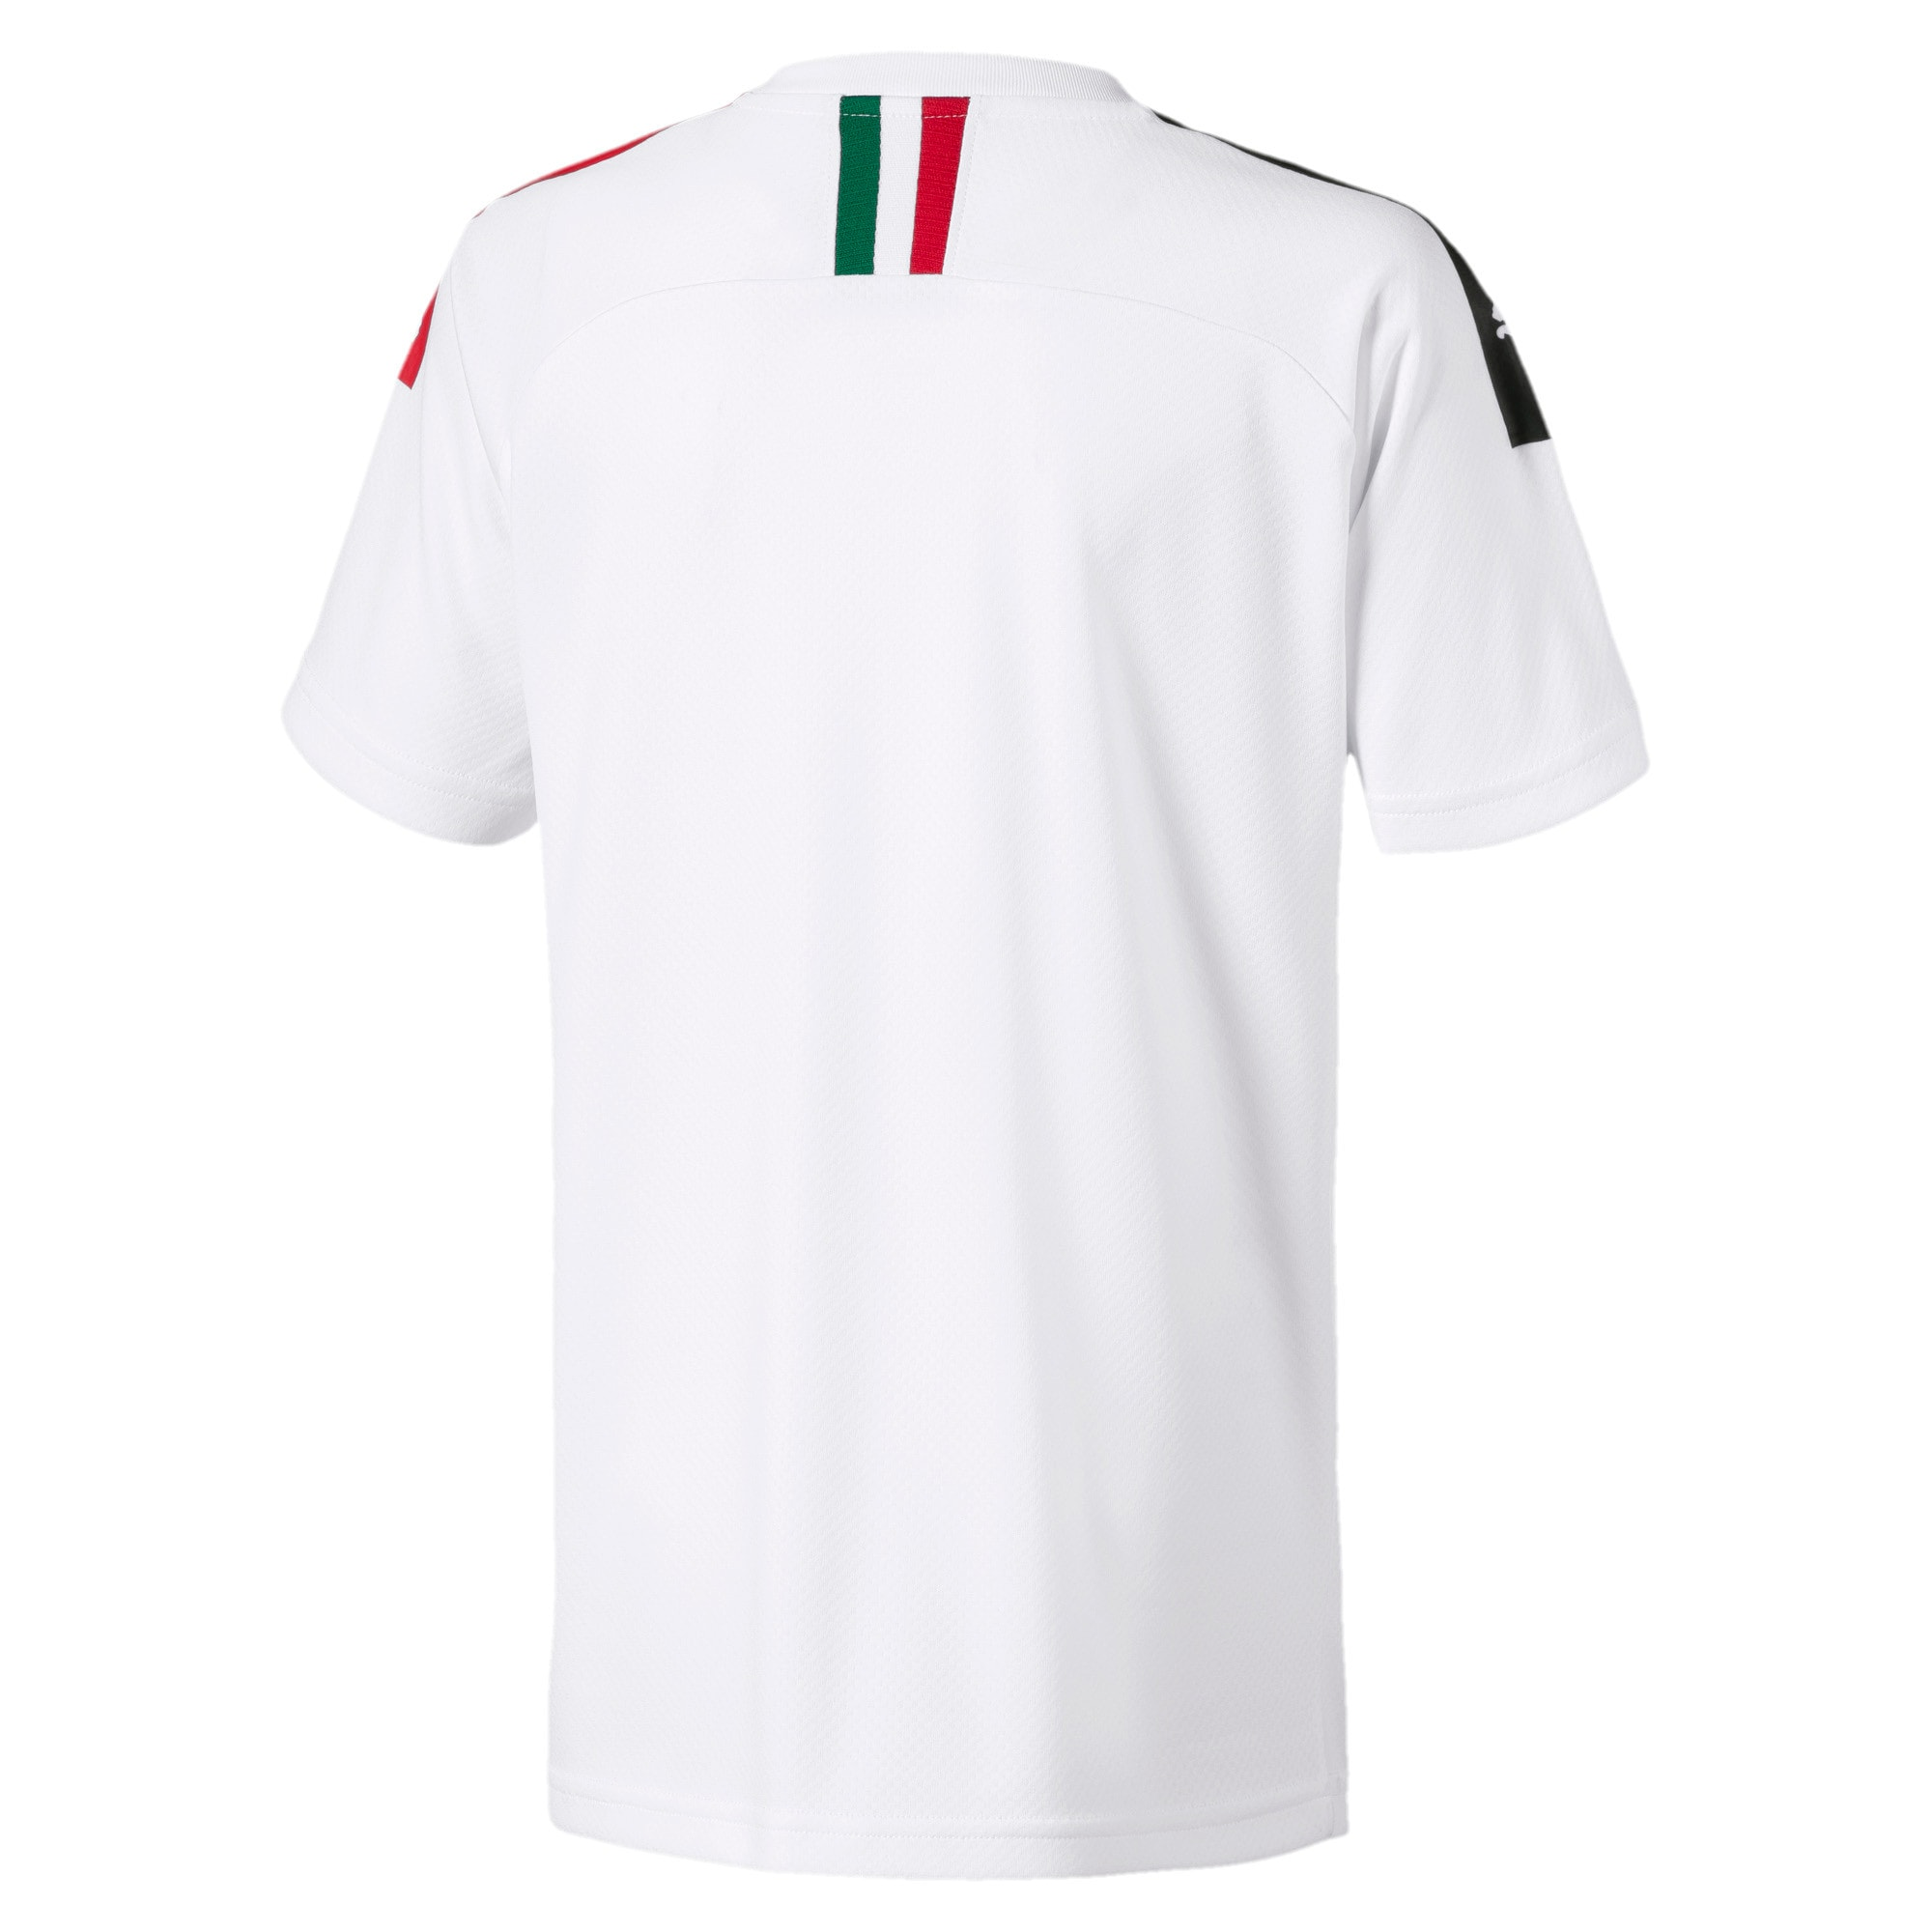 Thumbnail 2 of AC Milan Away Replica Kids' Jersey, Puma White-Tango Red, medium